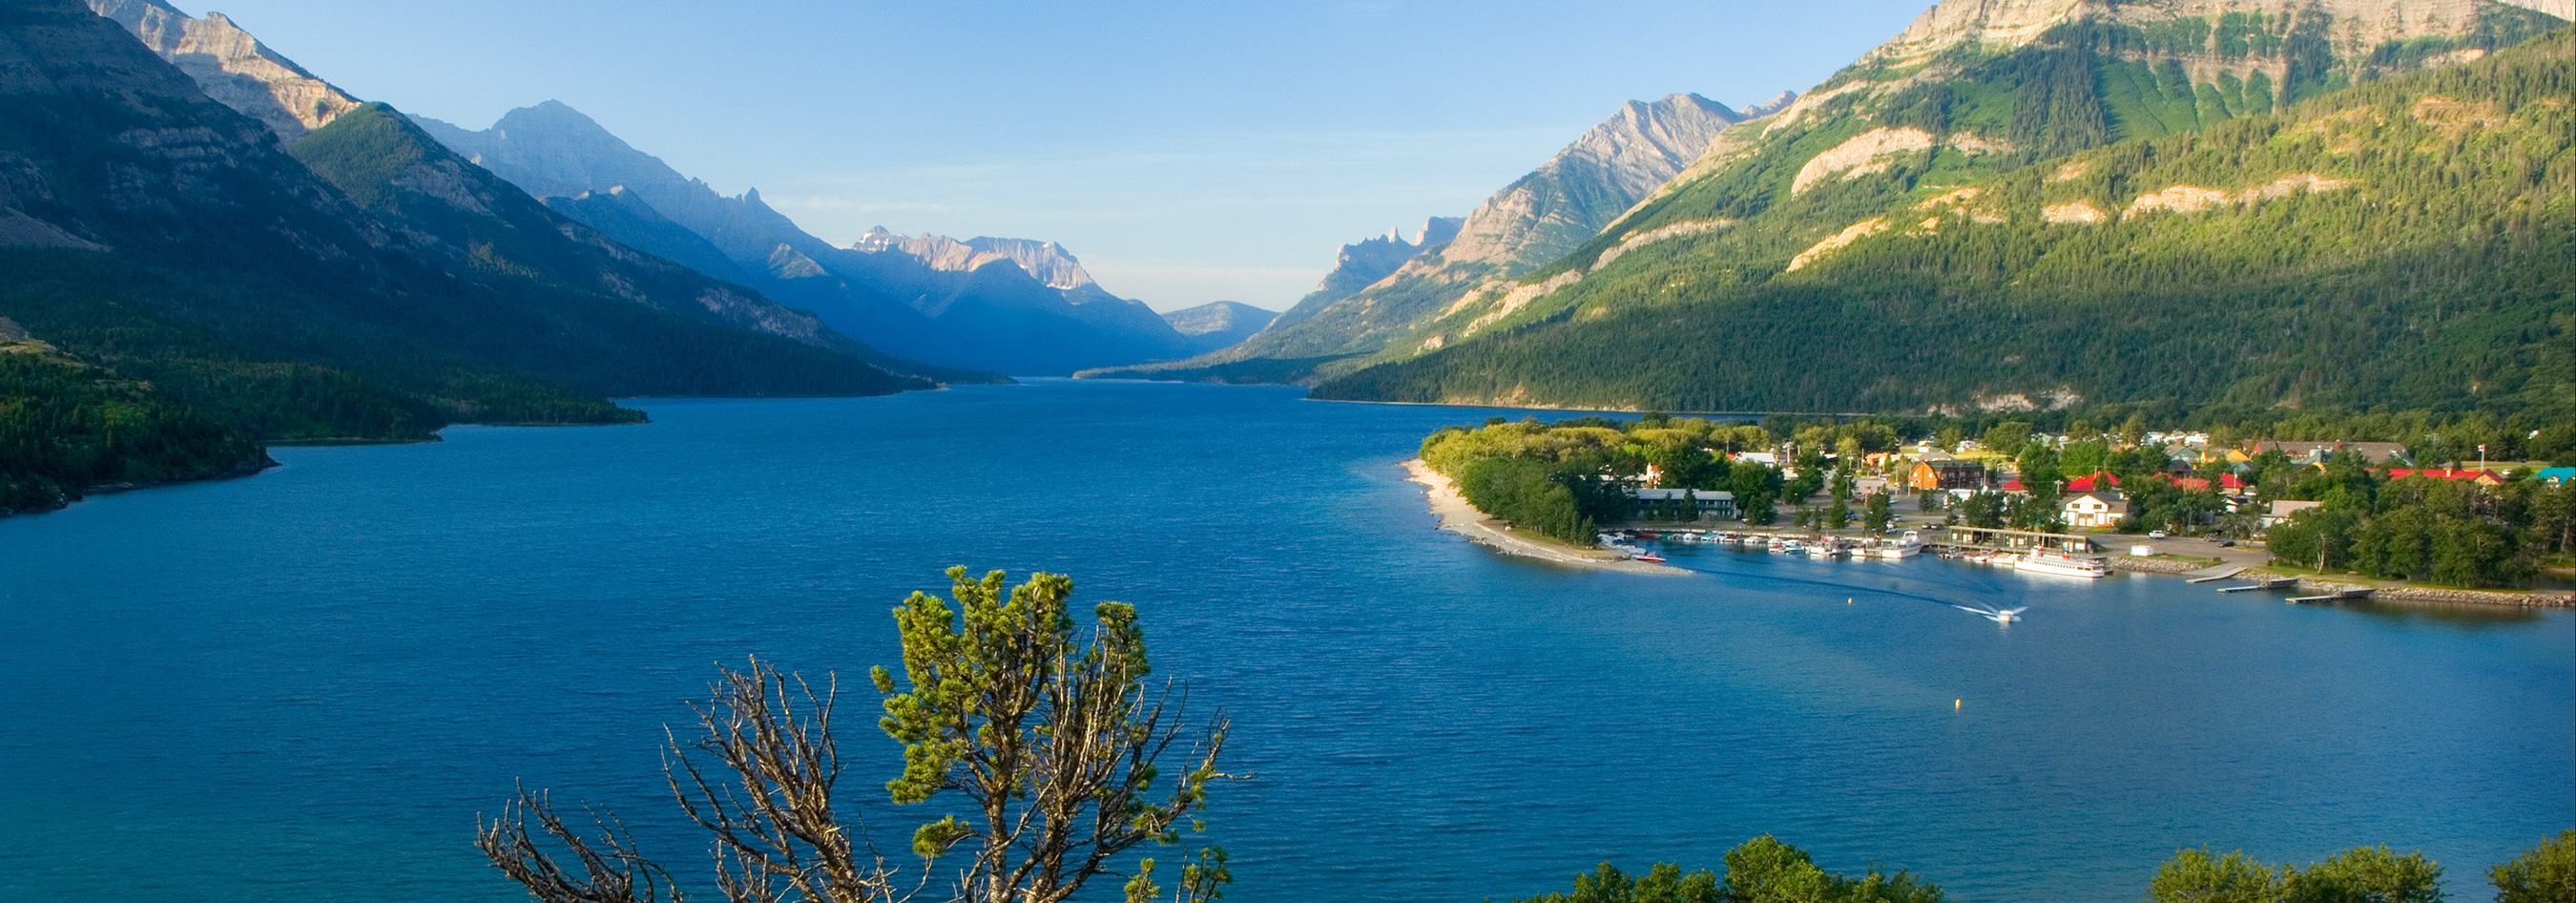 Waterton-Hotels-Waterton-Lake-and-Prince-of-Wales-Alberta-Canada-Reberdeen